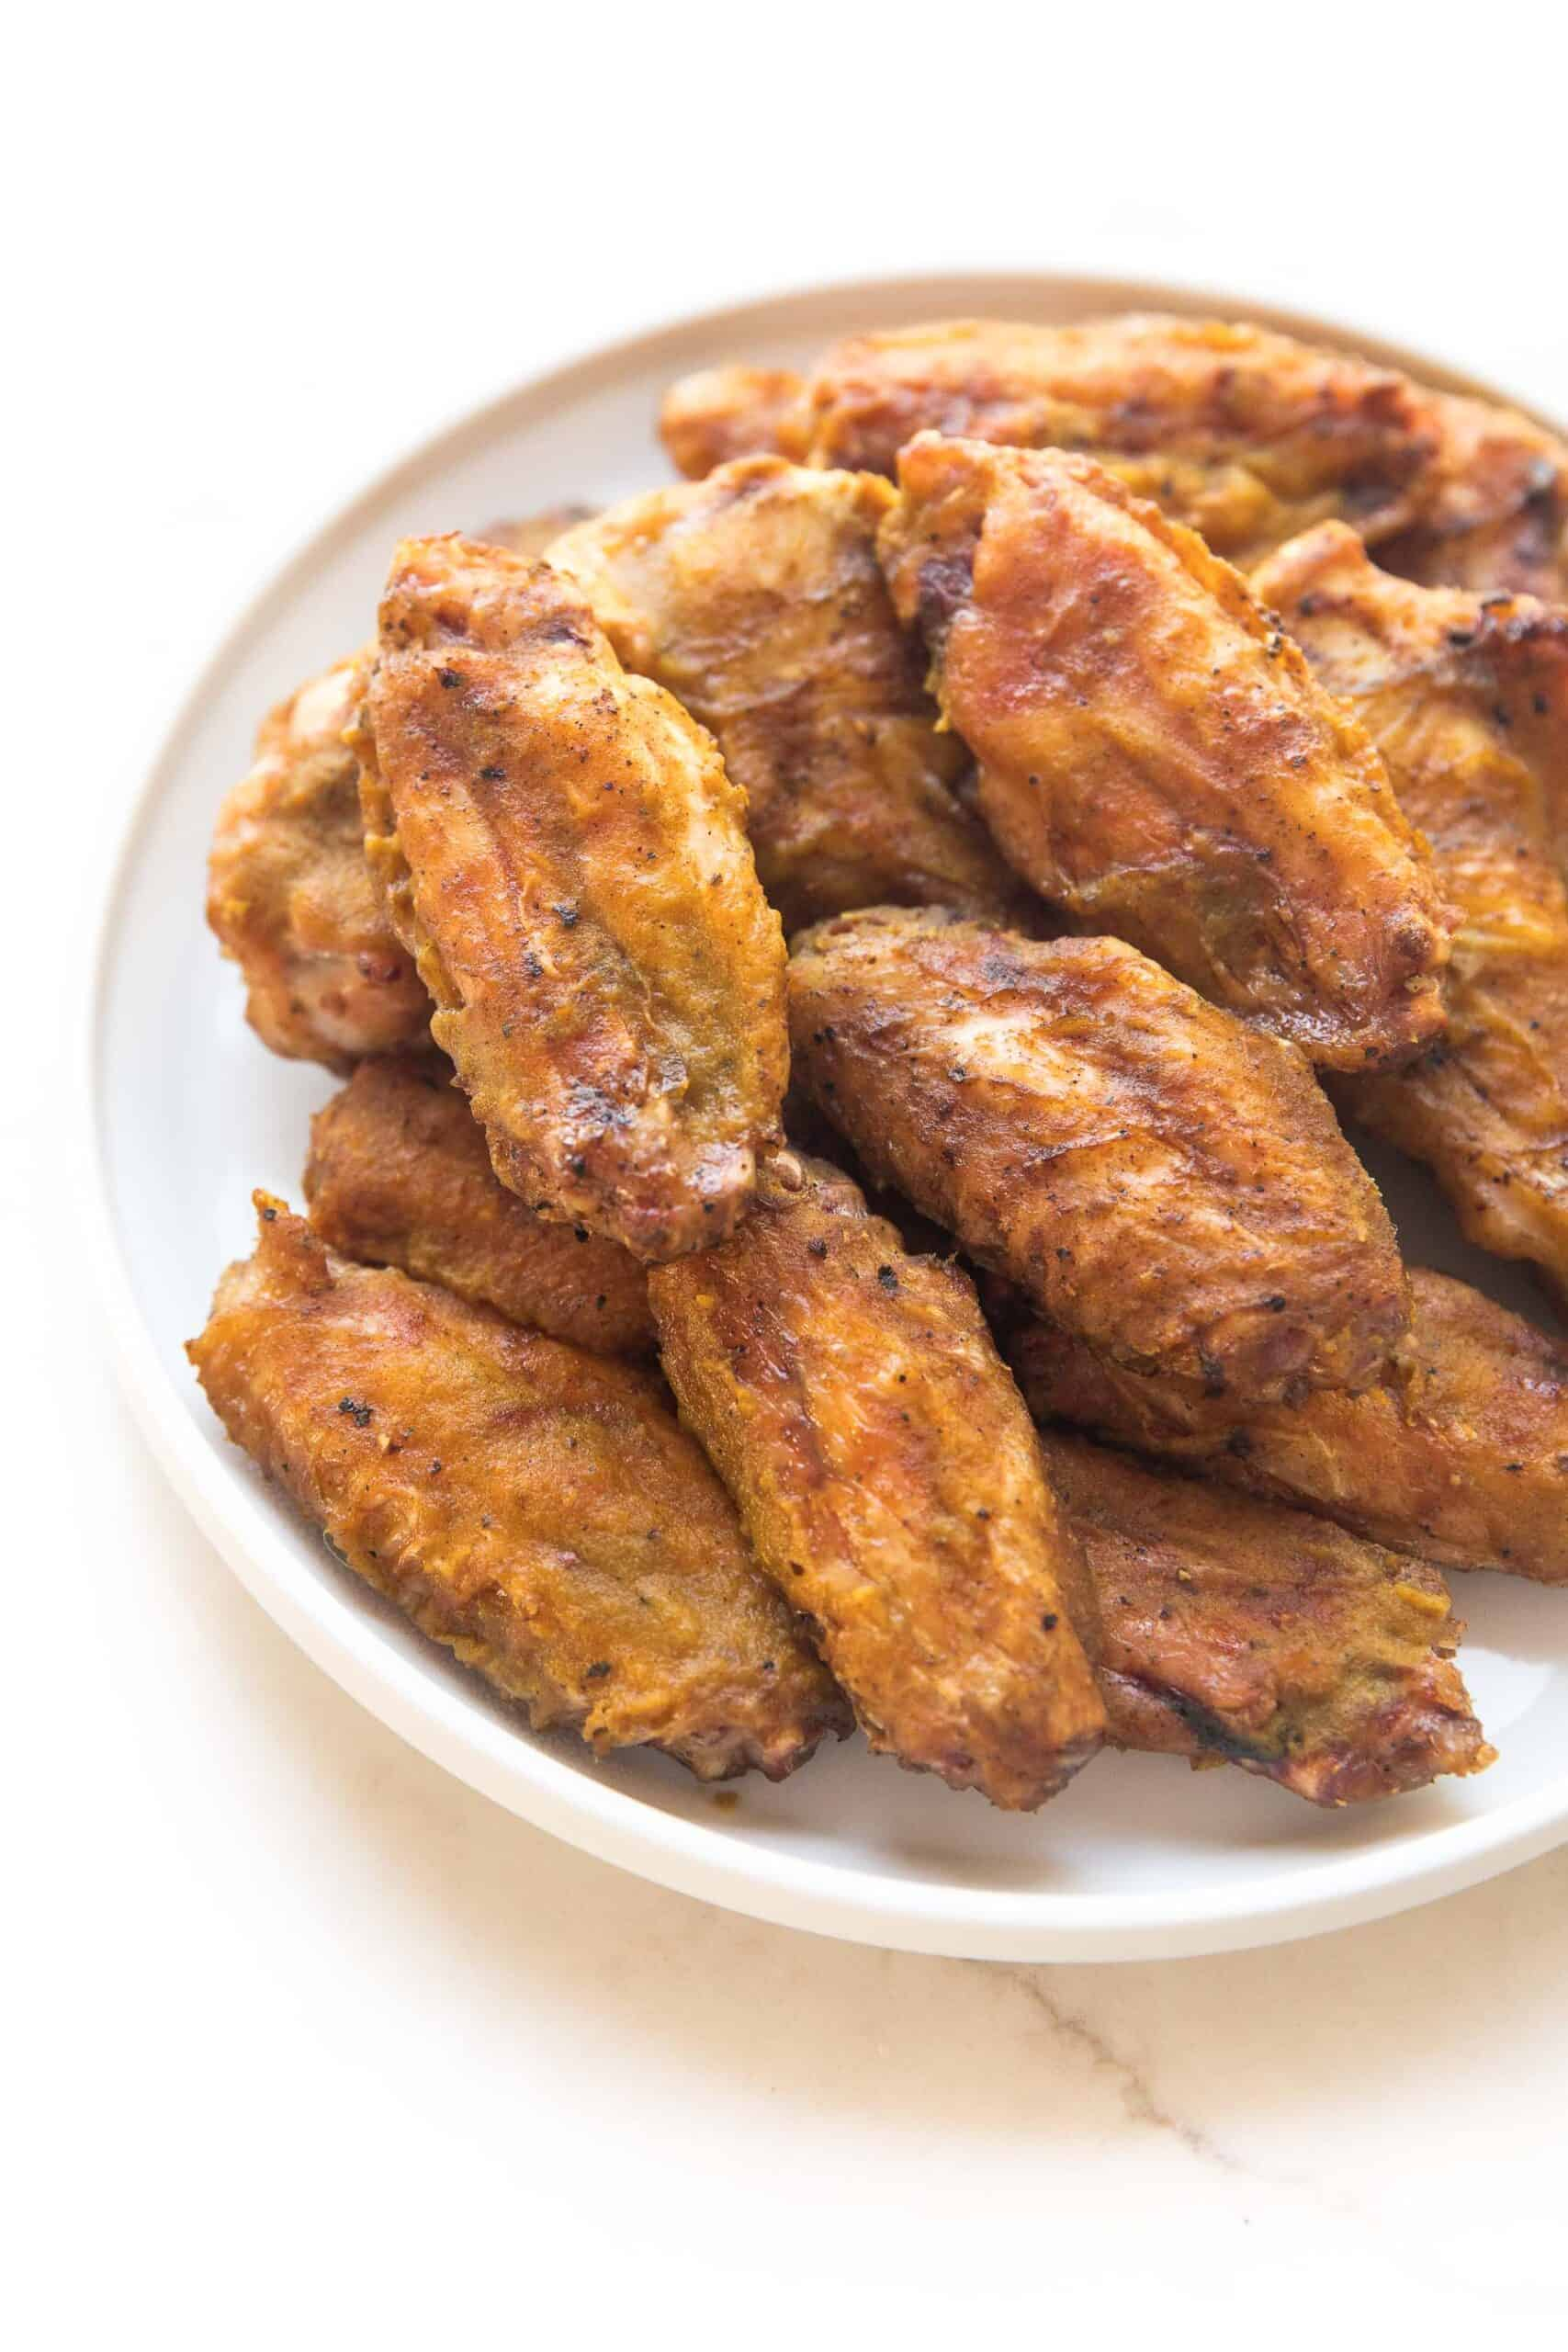 BBQ CHICKEN WINGS ON A WHITE PLATE